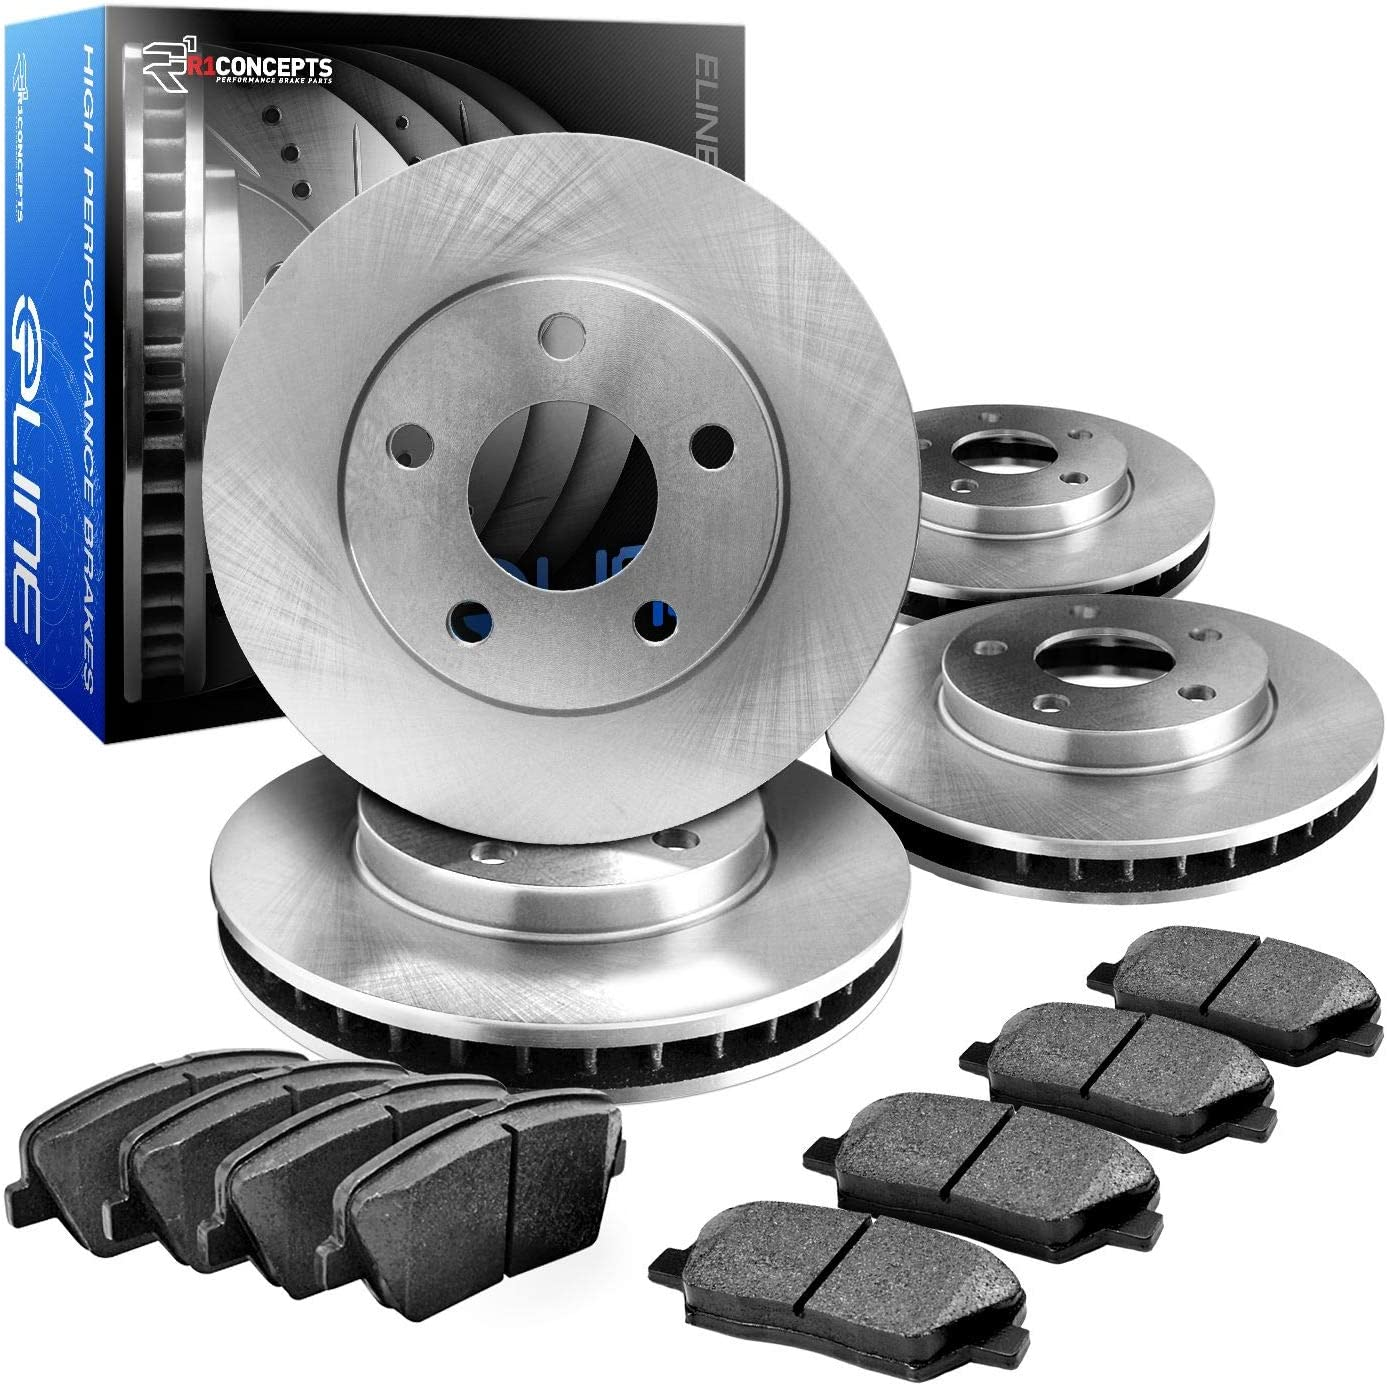 R1 Concepts CEOE10301 Eline trust Series Replacement And Rotors Sales Cerami